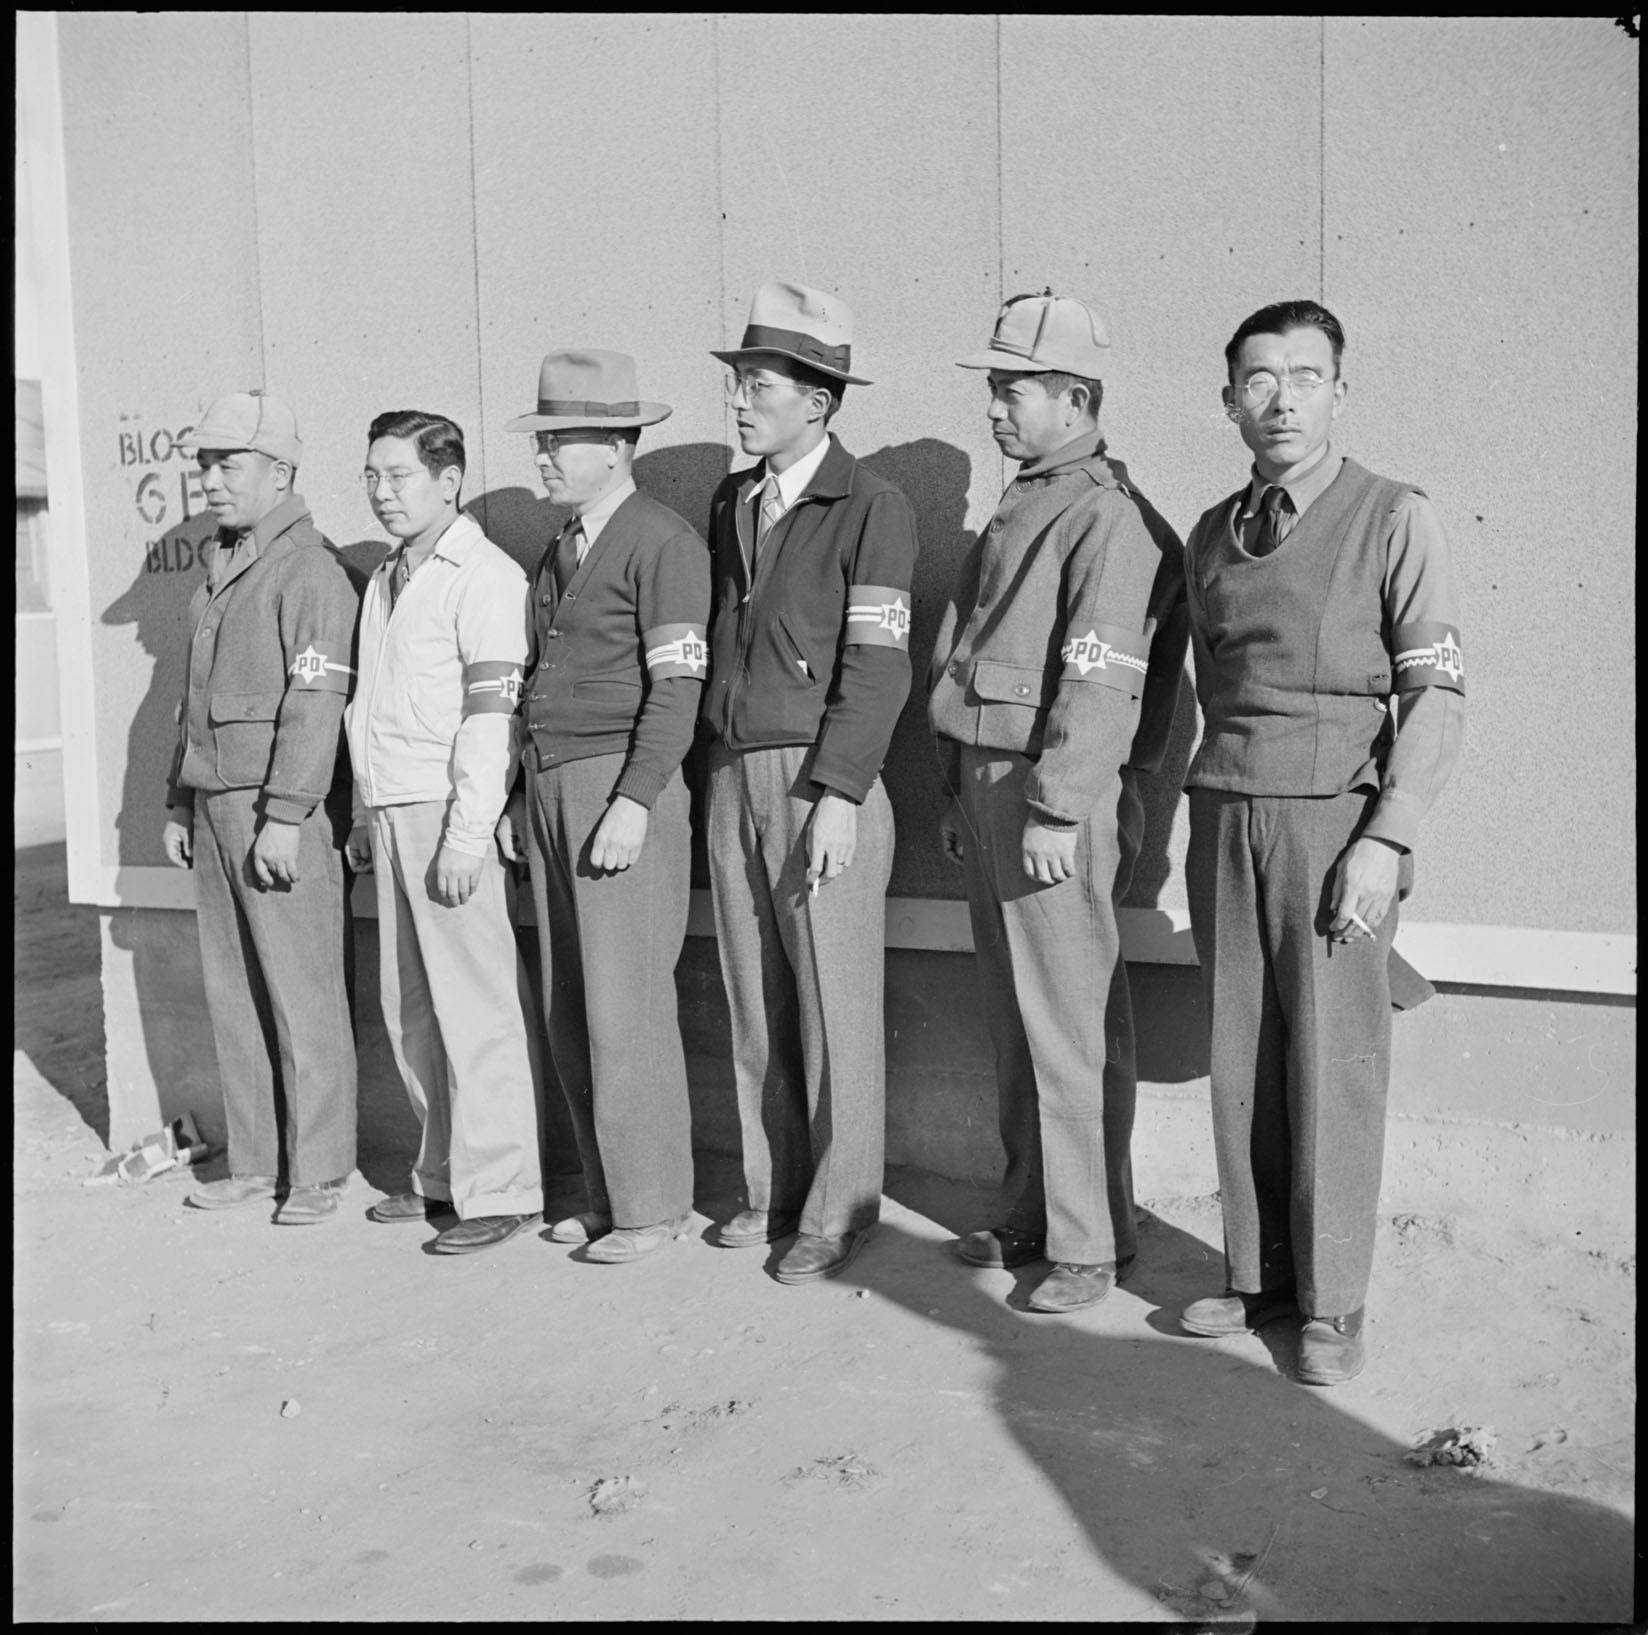 Japanese interment camp detainees wearing identification arm bands